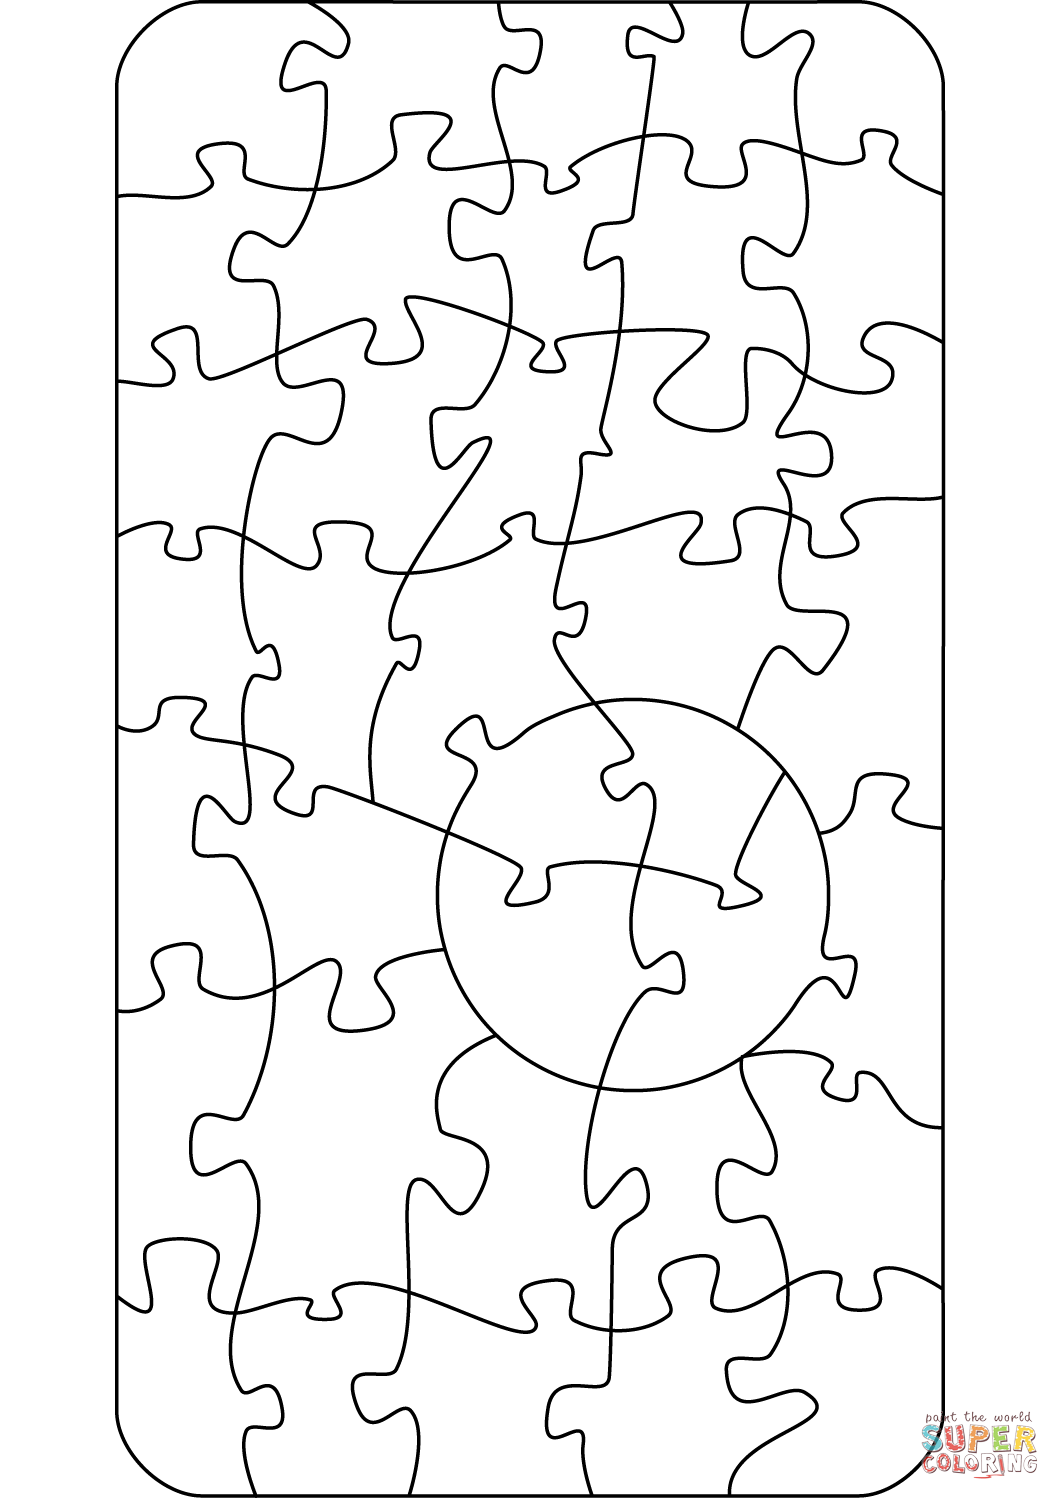 Jigsaw Pattern Coloring Page